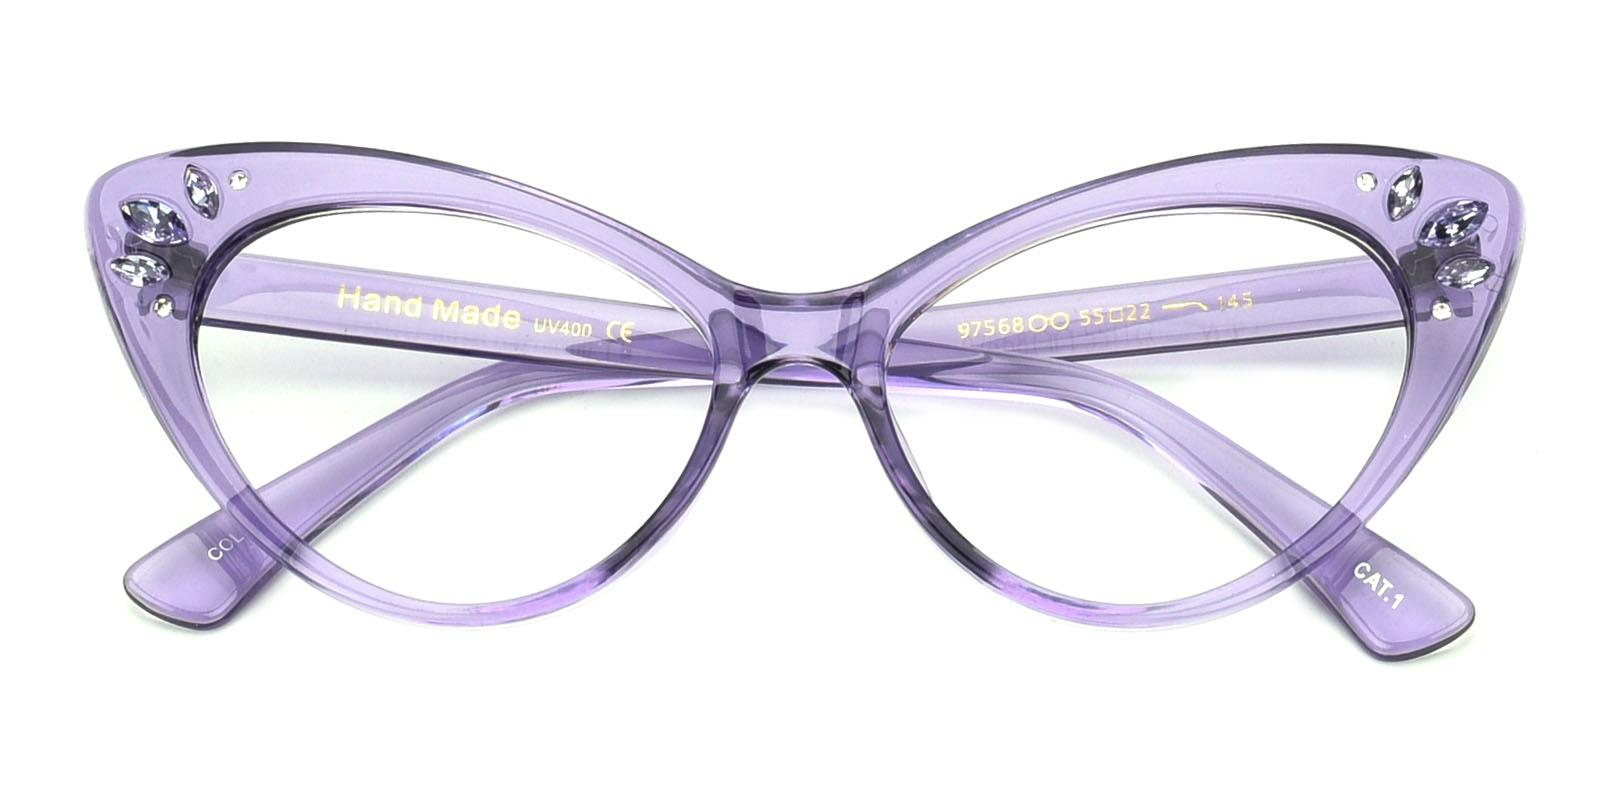 Samber-Purple-Cat-Plastic-Eyeglasses-detail